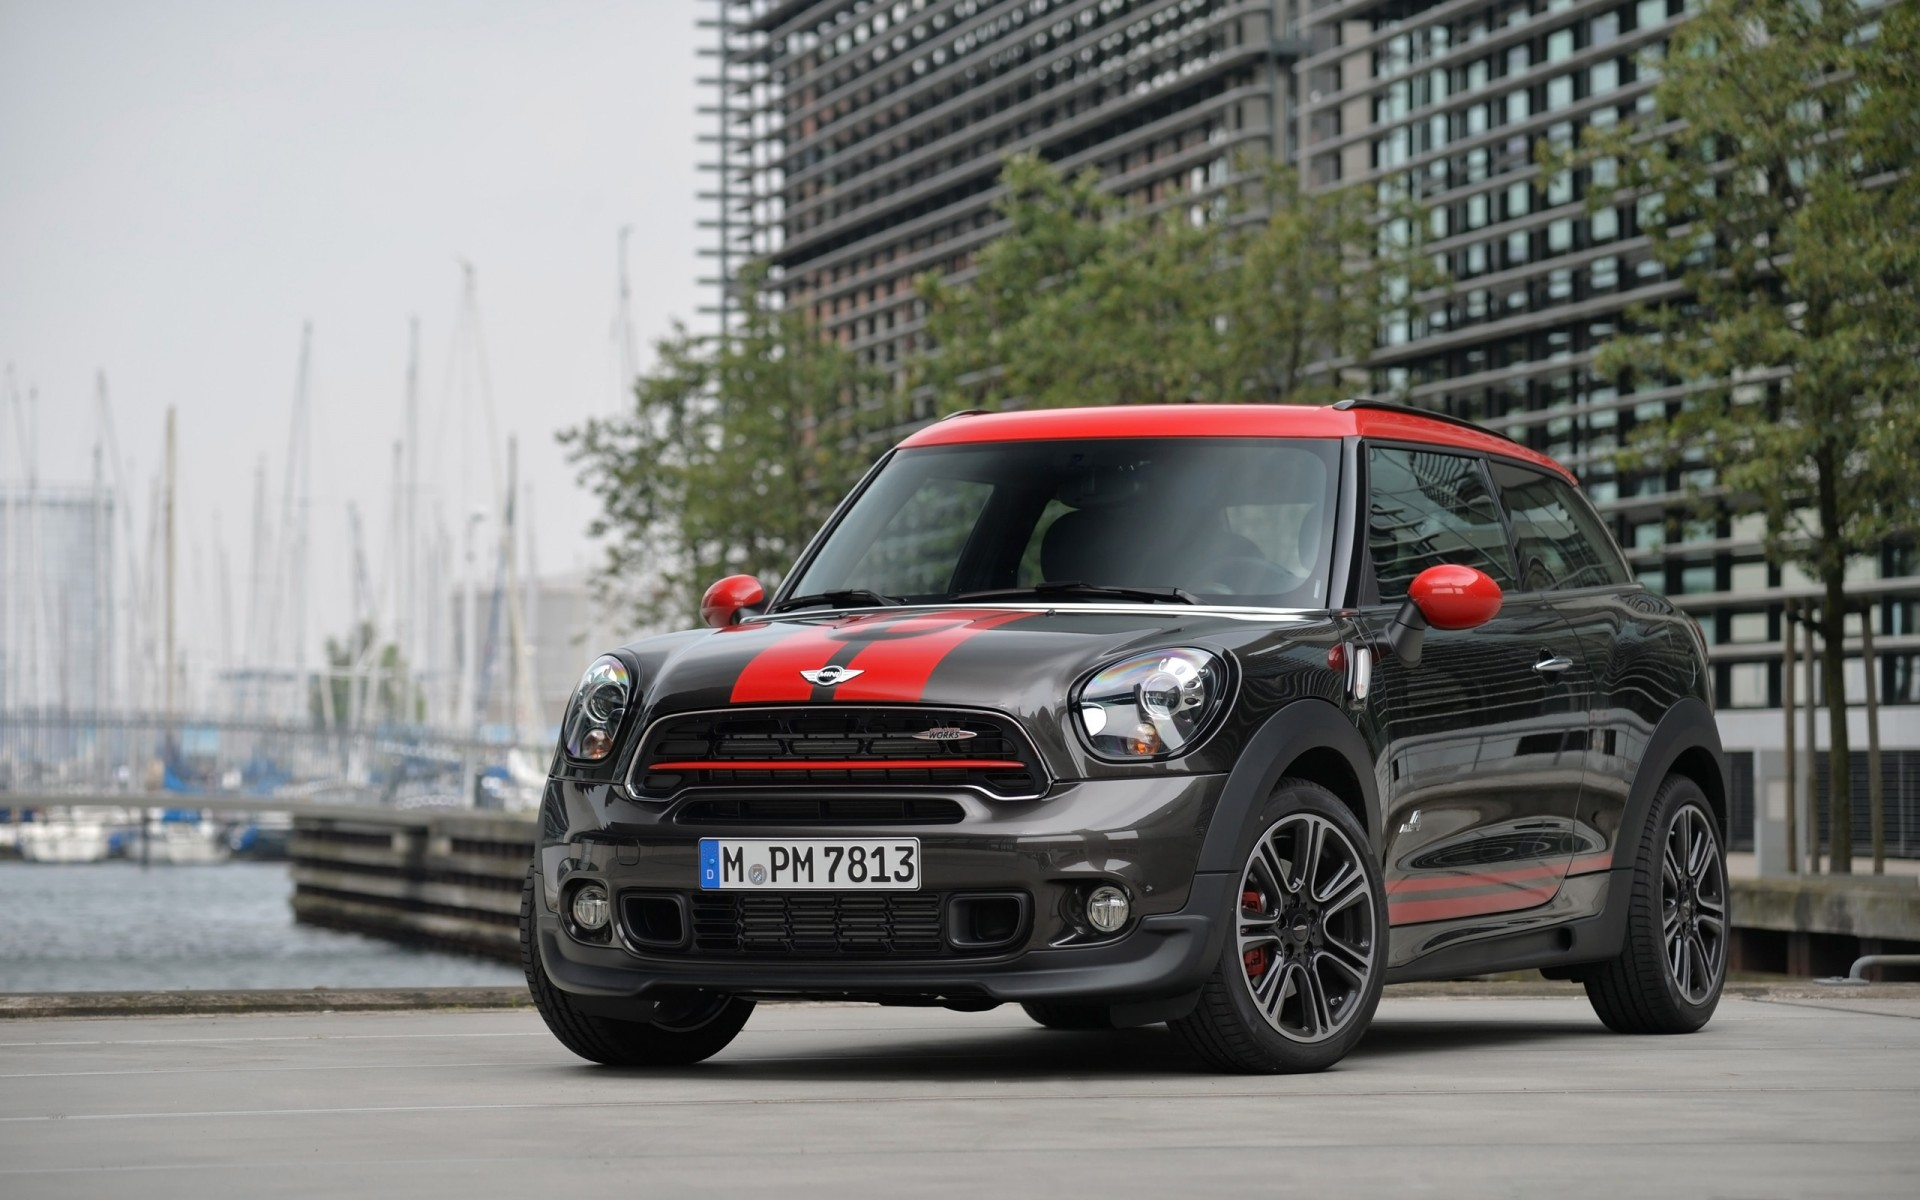 2015 mini john cooper works paceman wallpaper hd car wallpapers id 4702. Black Bedroom Furniture Sets. Home Design Ideas